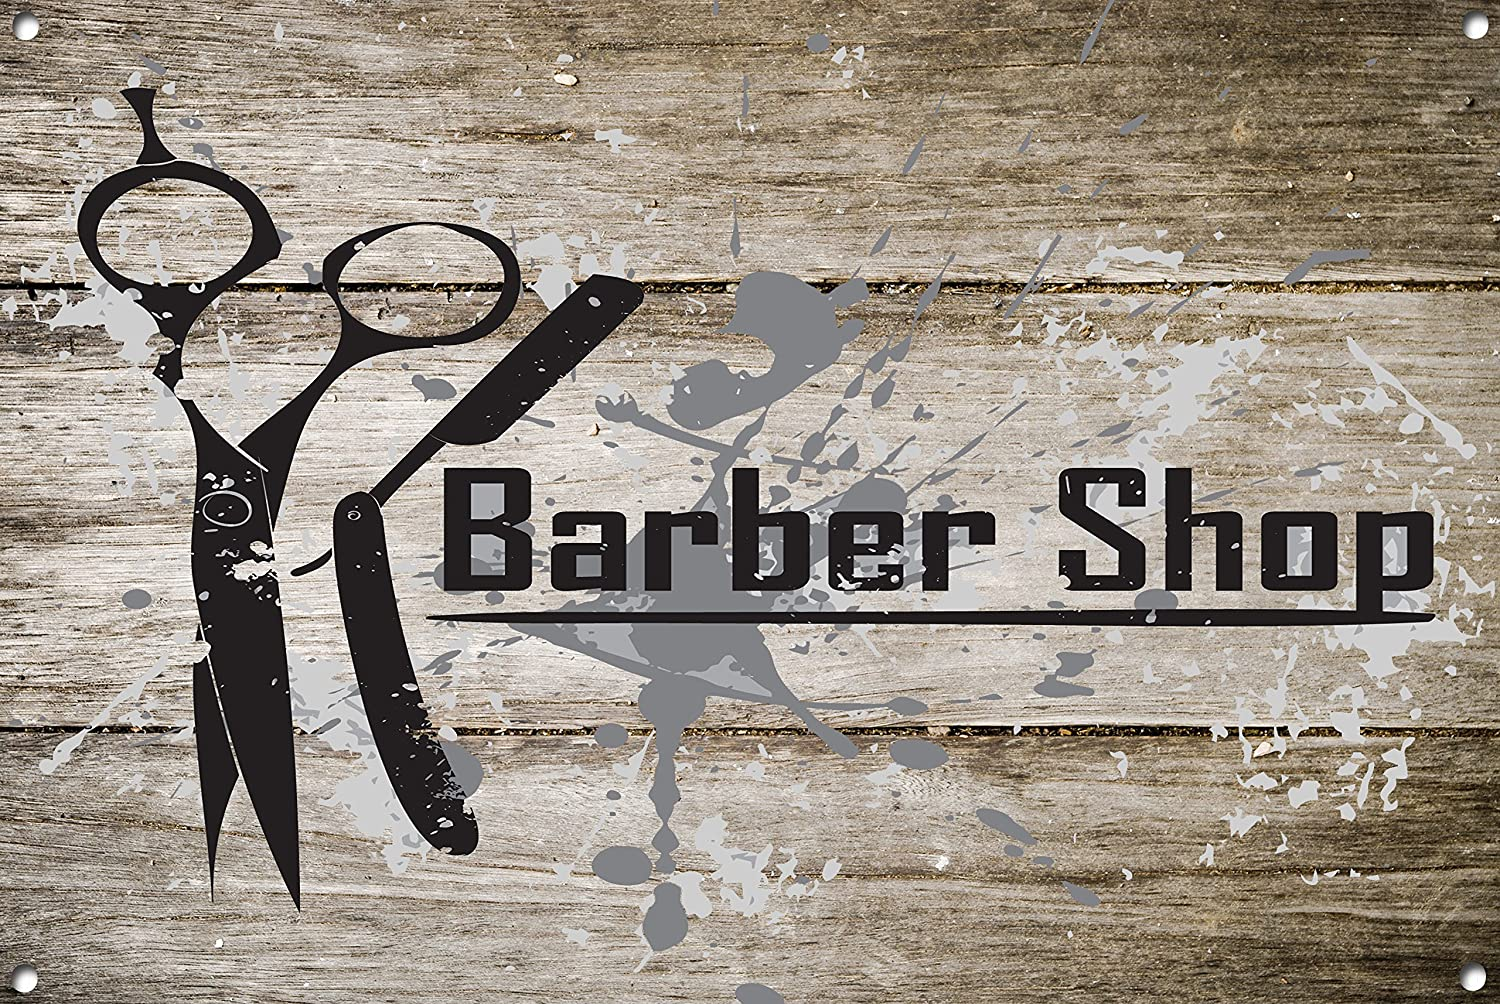 Barber Shop 1014 - Cartel de metal, diseño de barbero ...